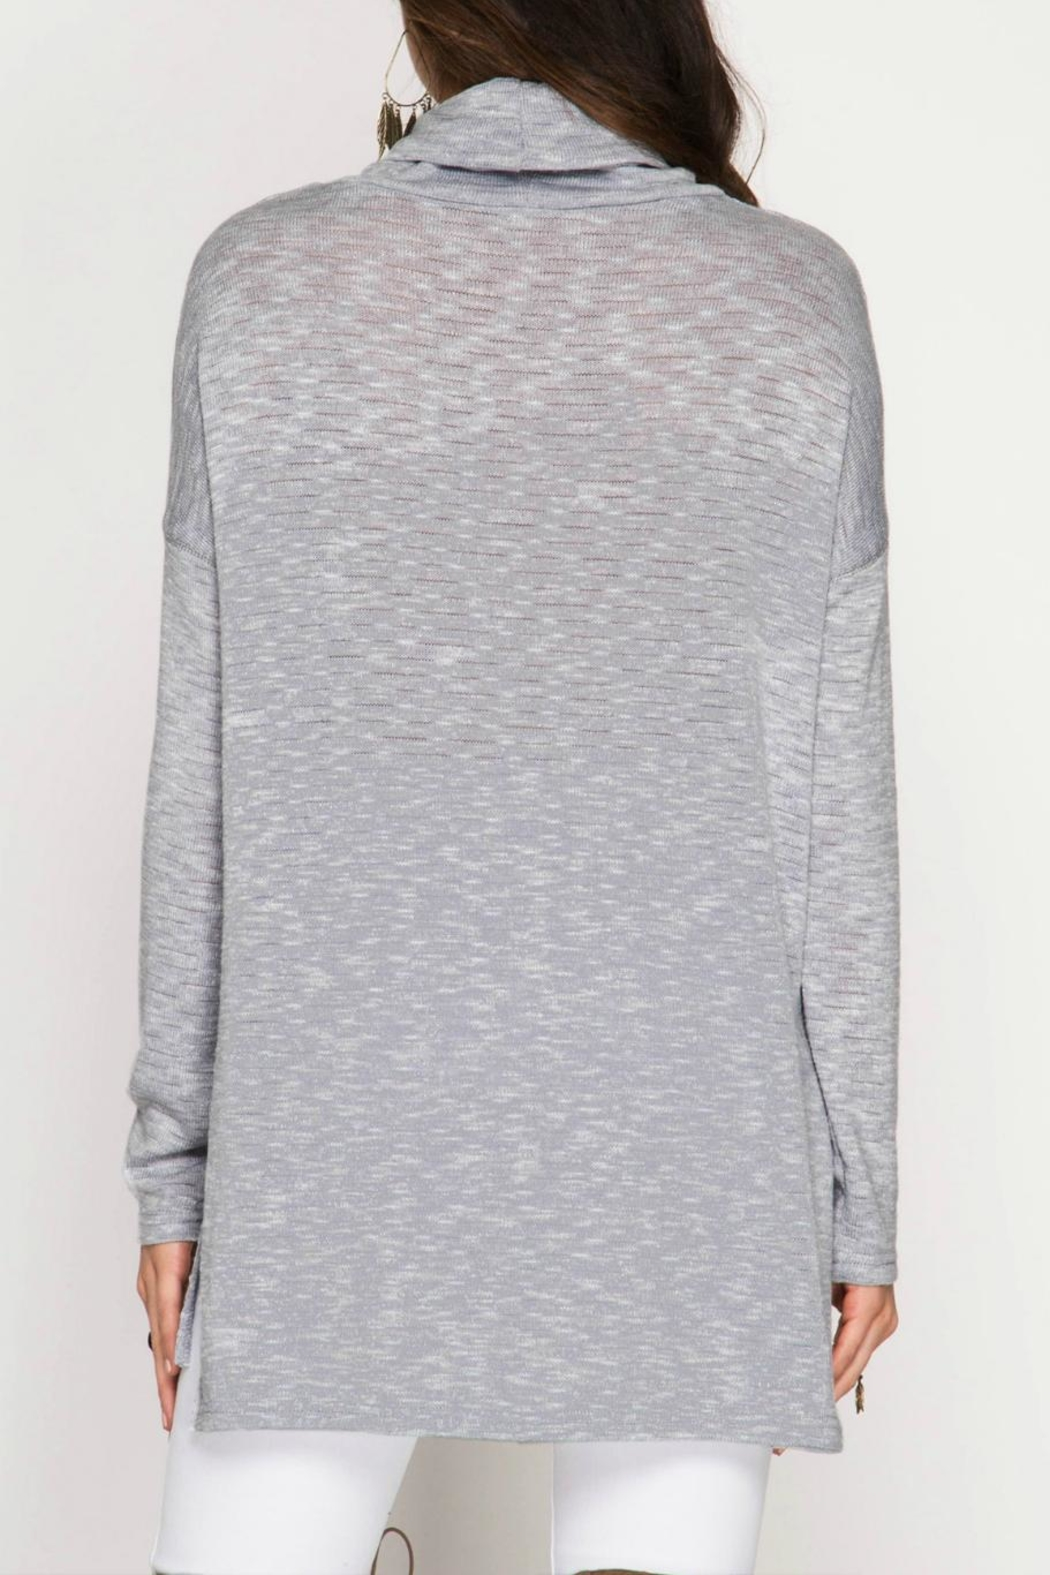 She + Sky Marled Knit Top - Front Full Image